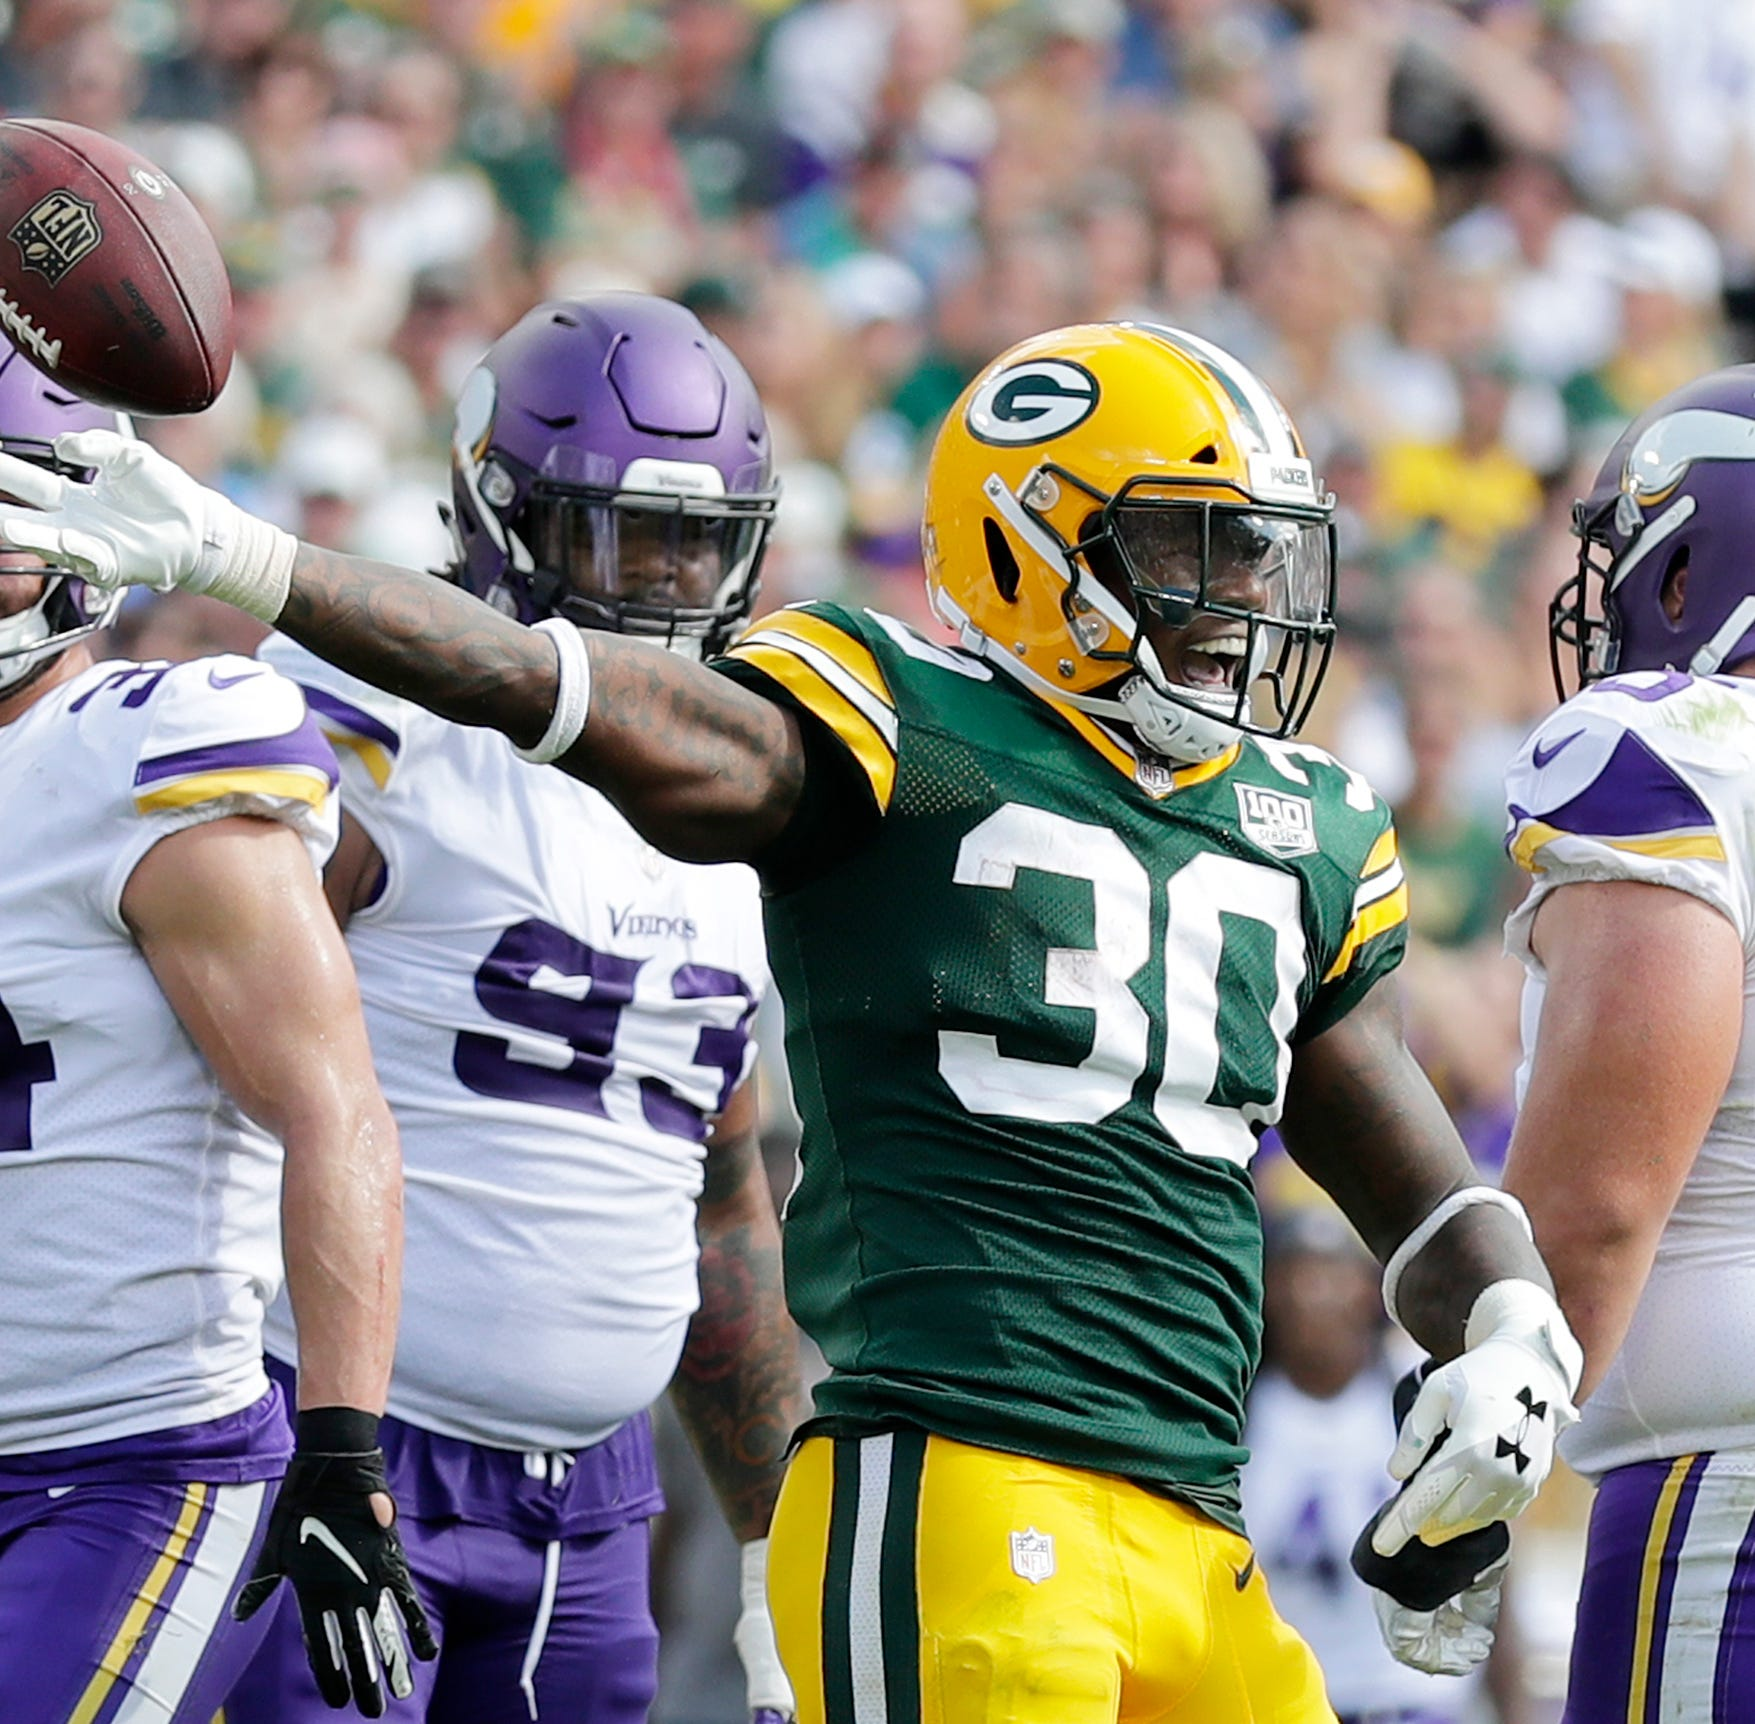 Packers to host Vikings in home opener, have max number of prime-time games